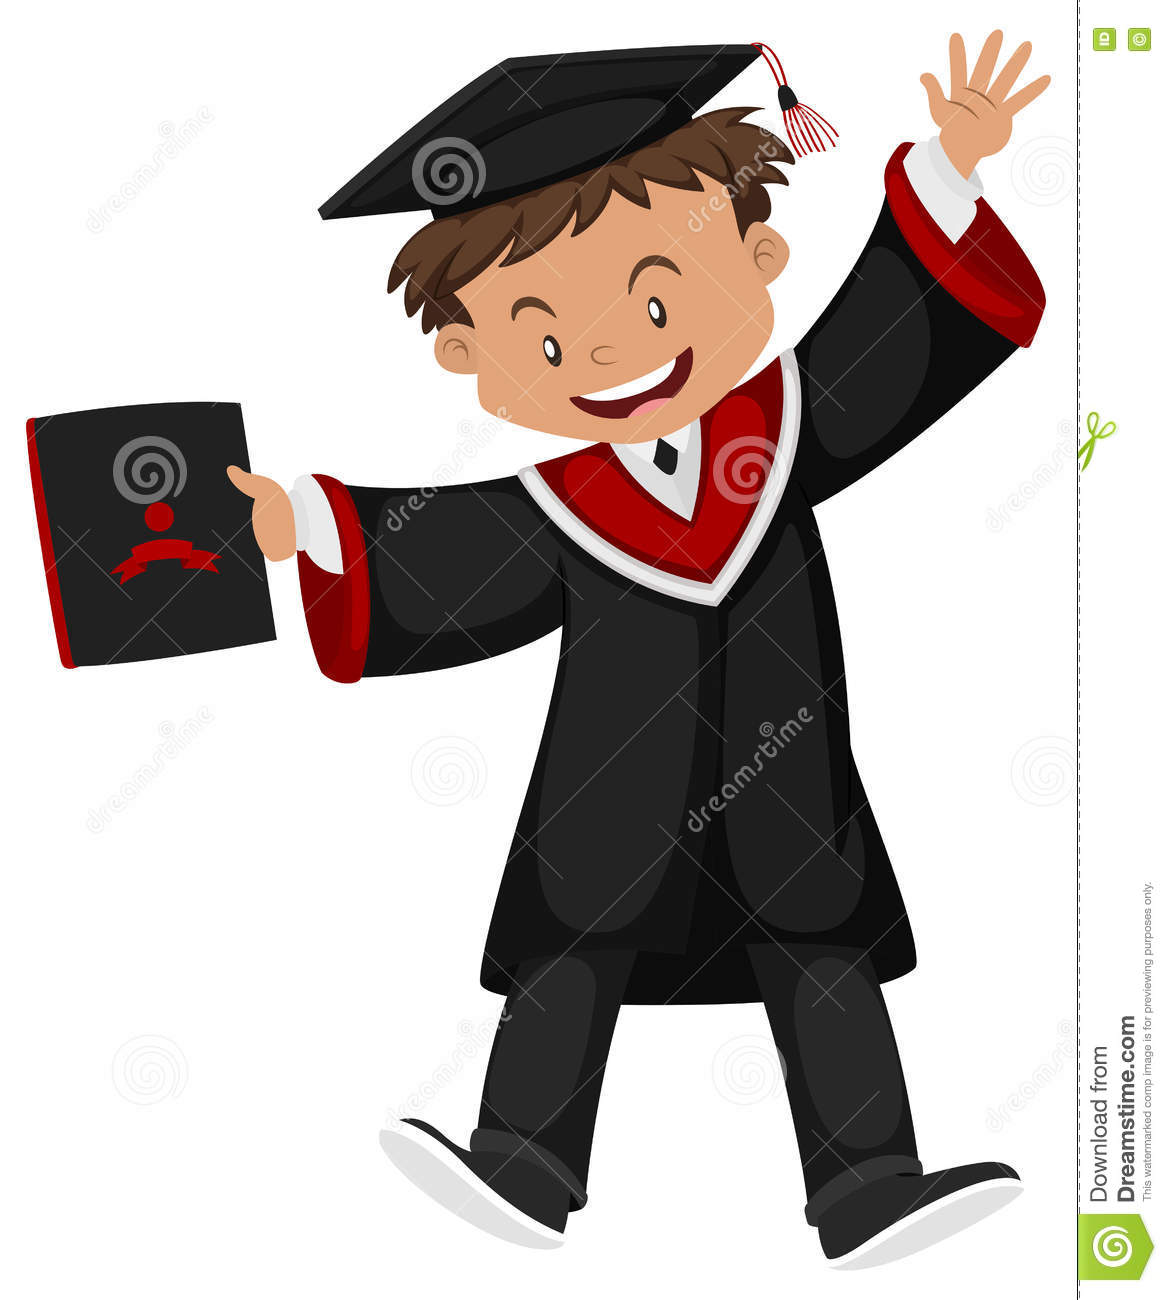 Man In Black Graduation Gown With Cap Stock Vector - Illustration of ...